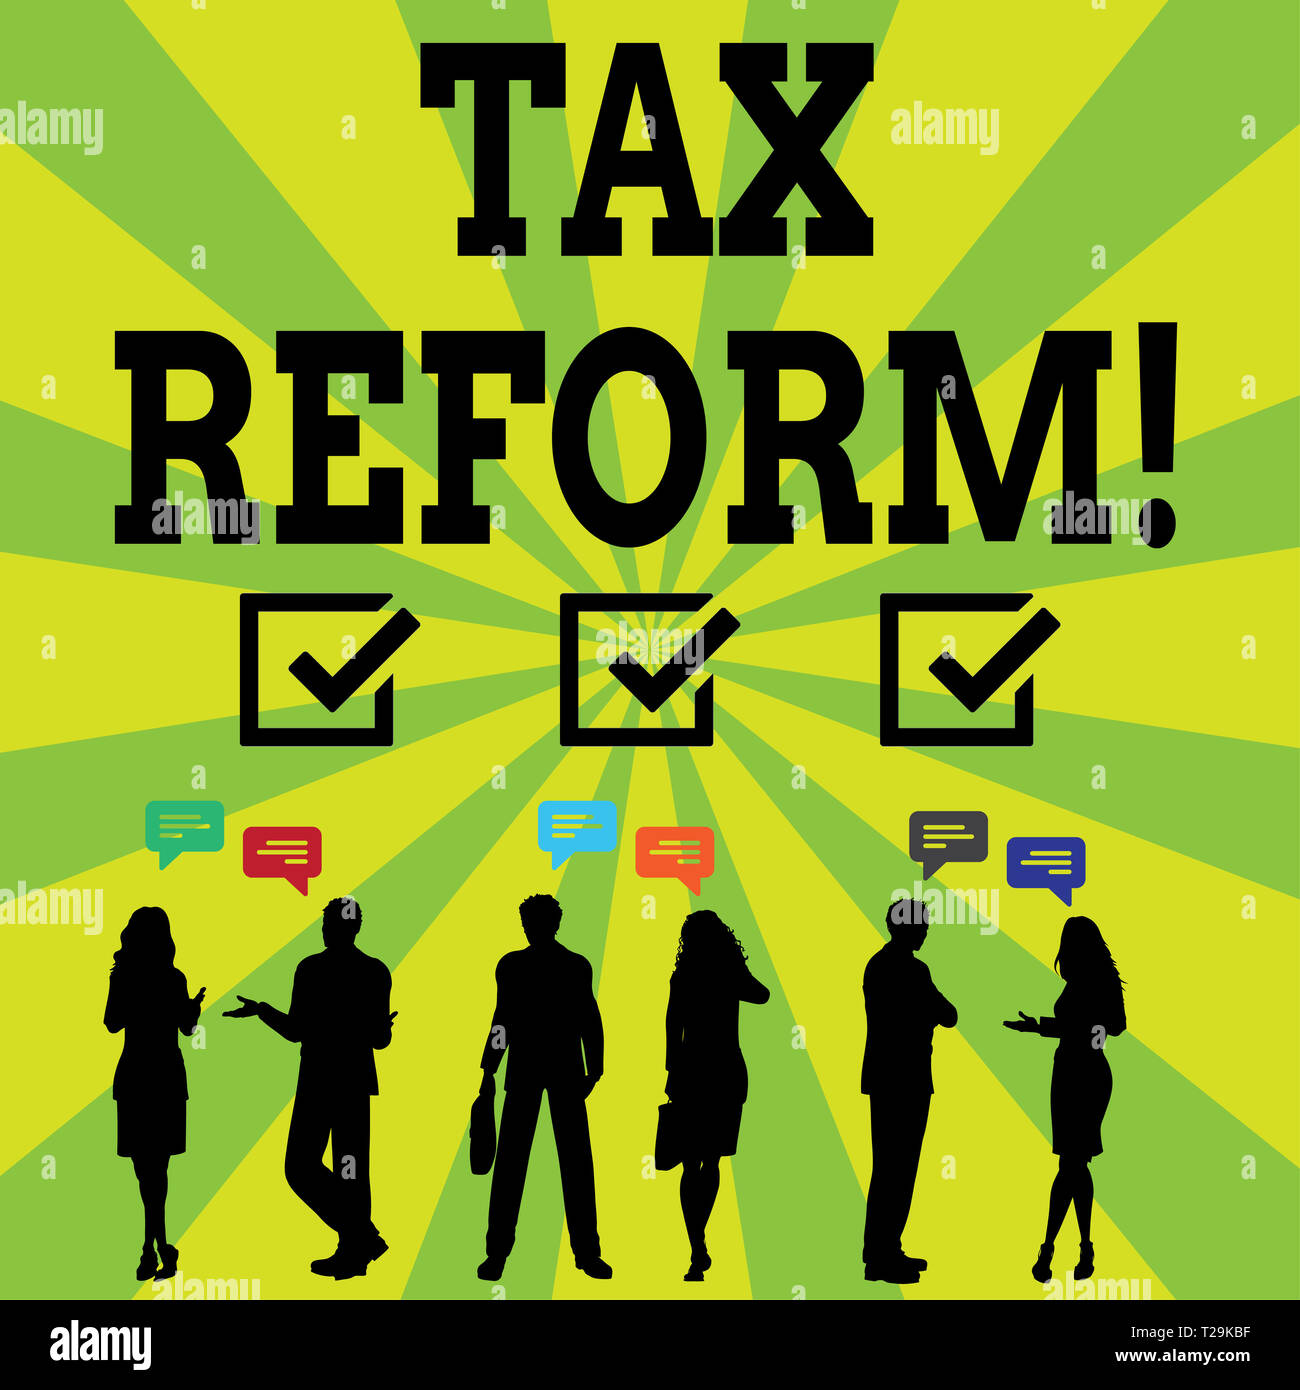 Tax Reform Stock Photos & Tax Reform Stock Images